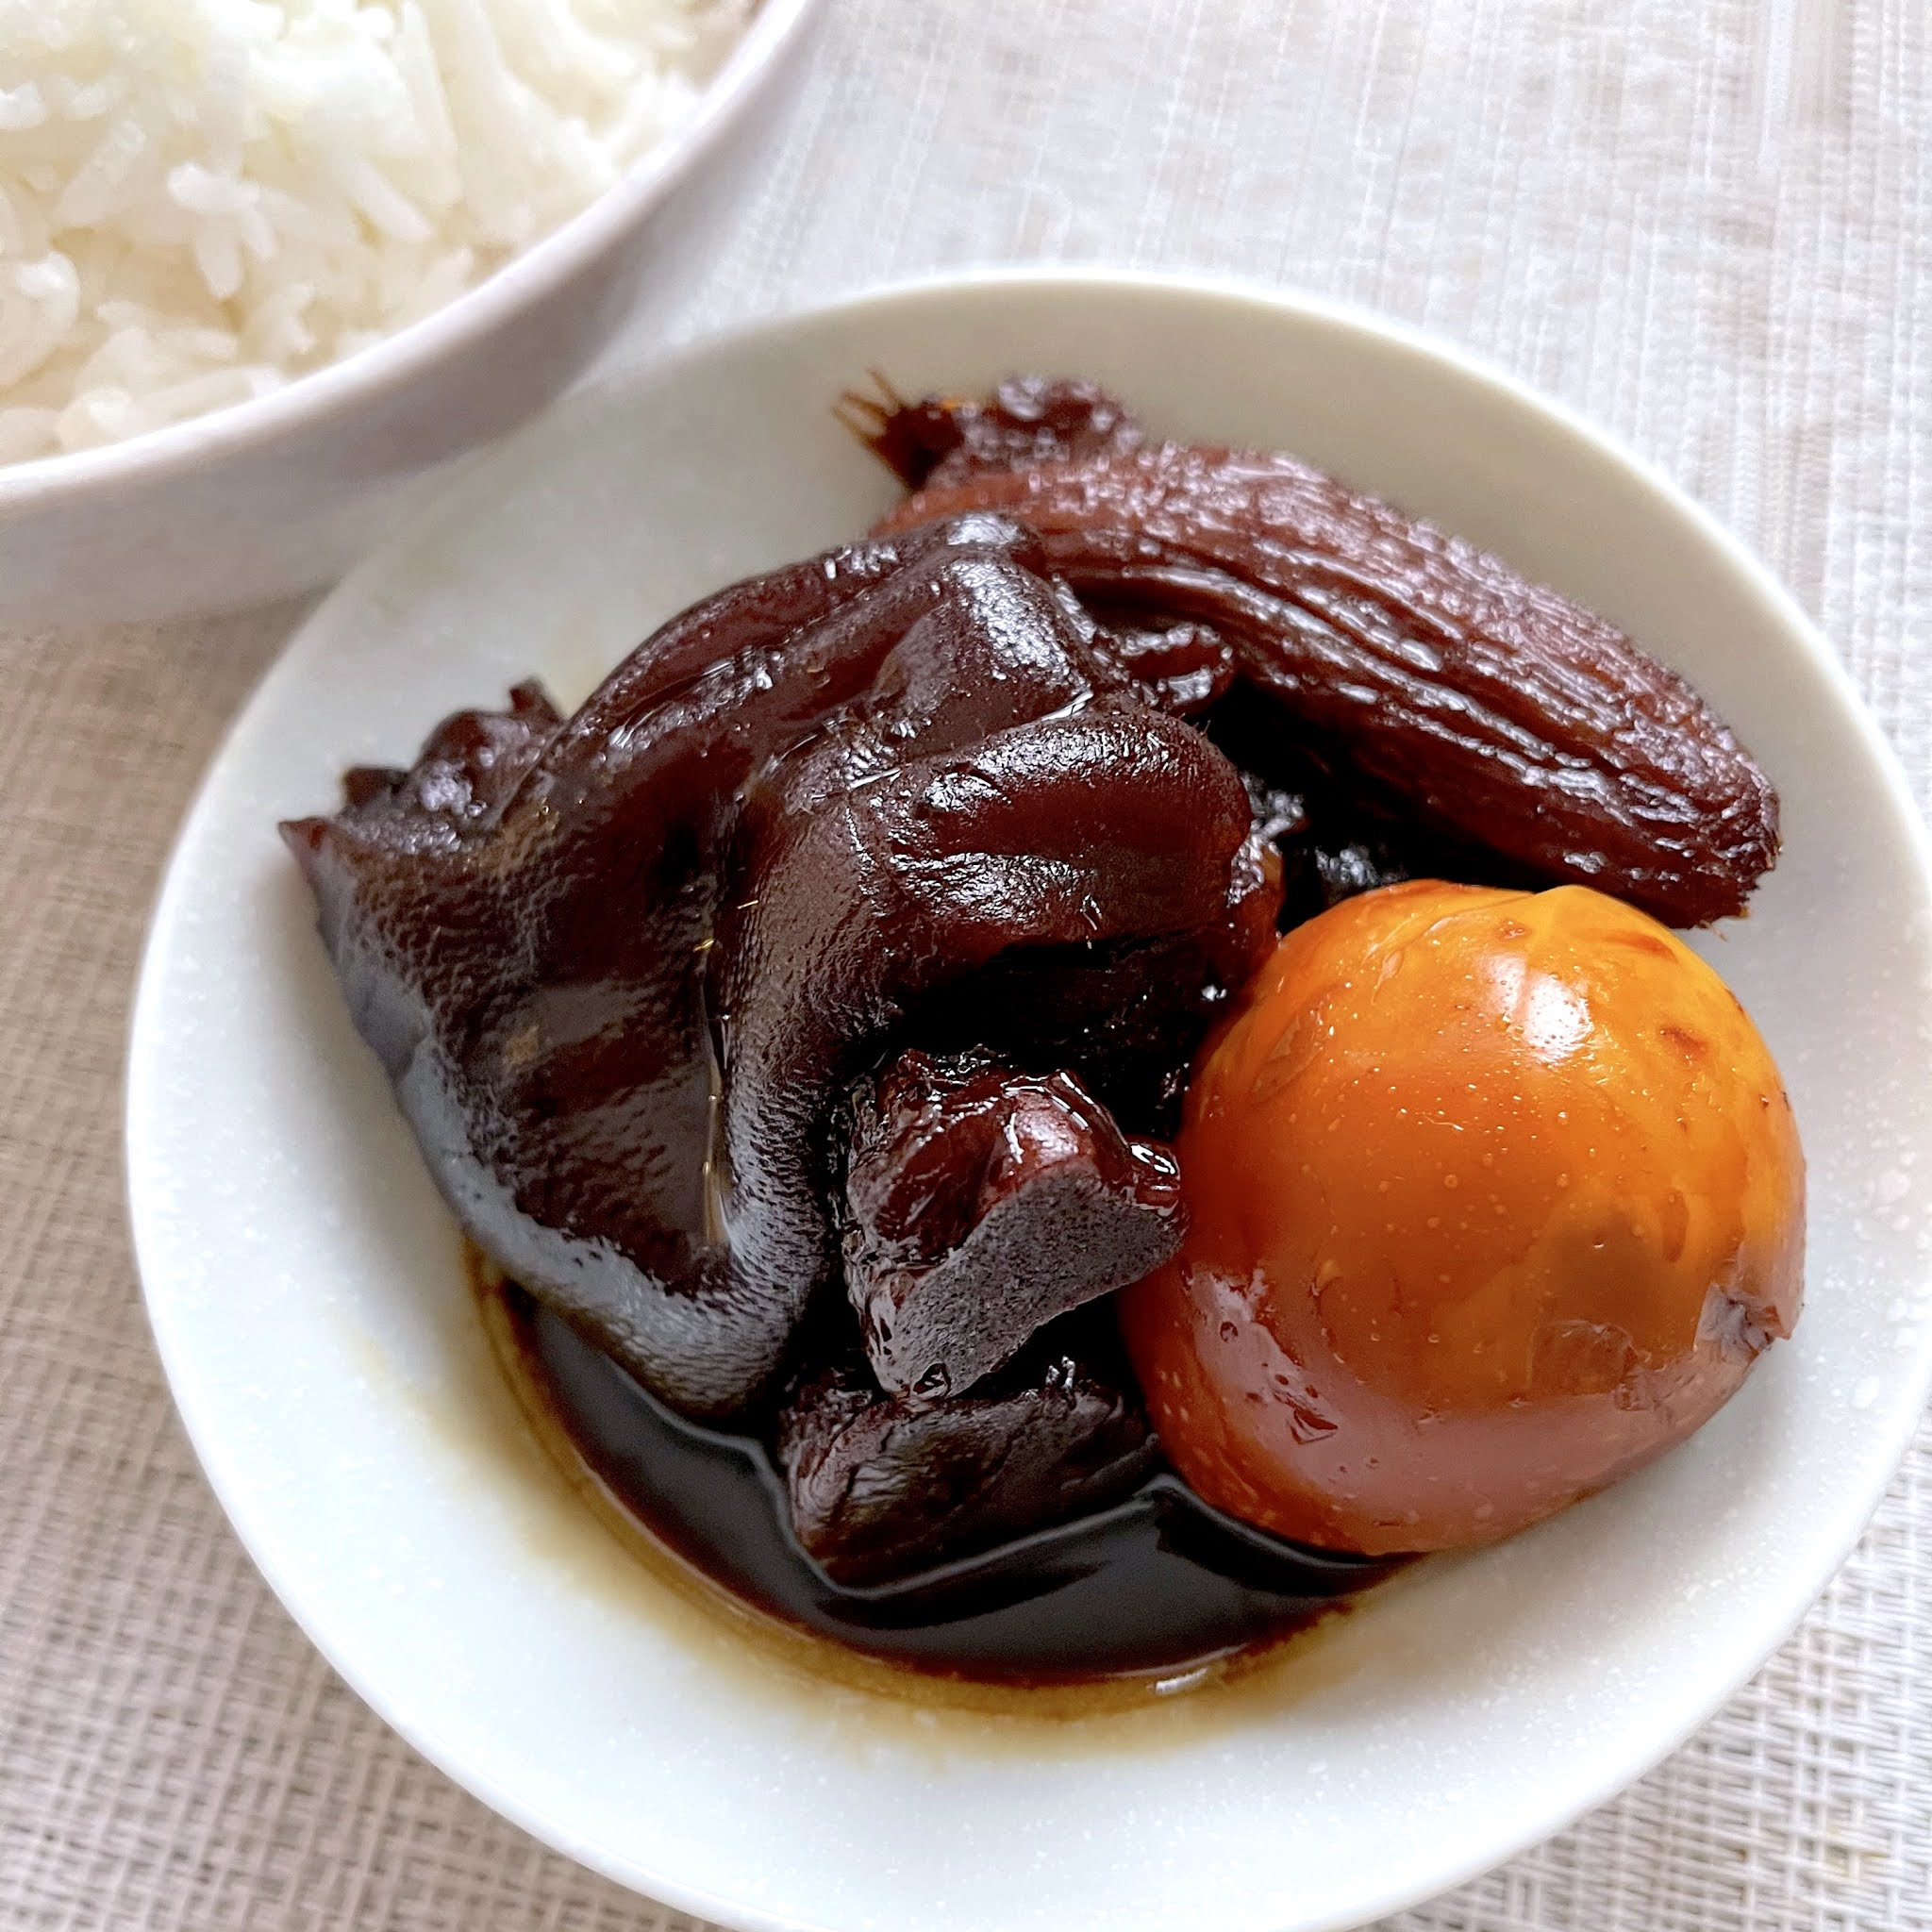 Chinese confinement recipes